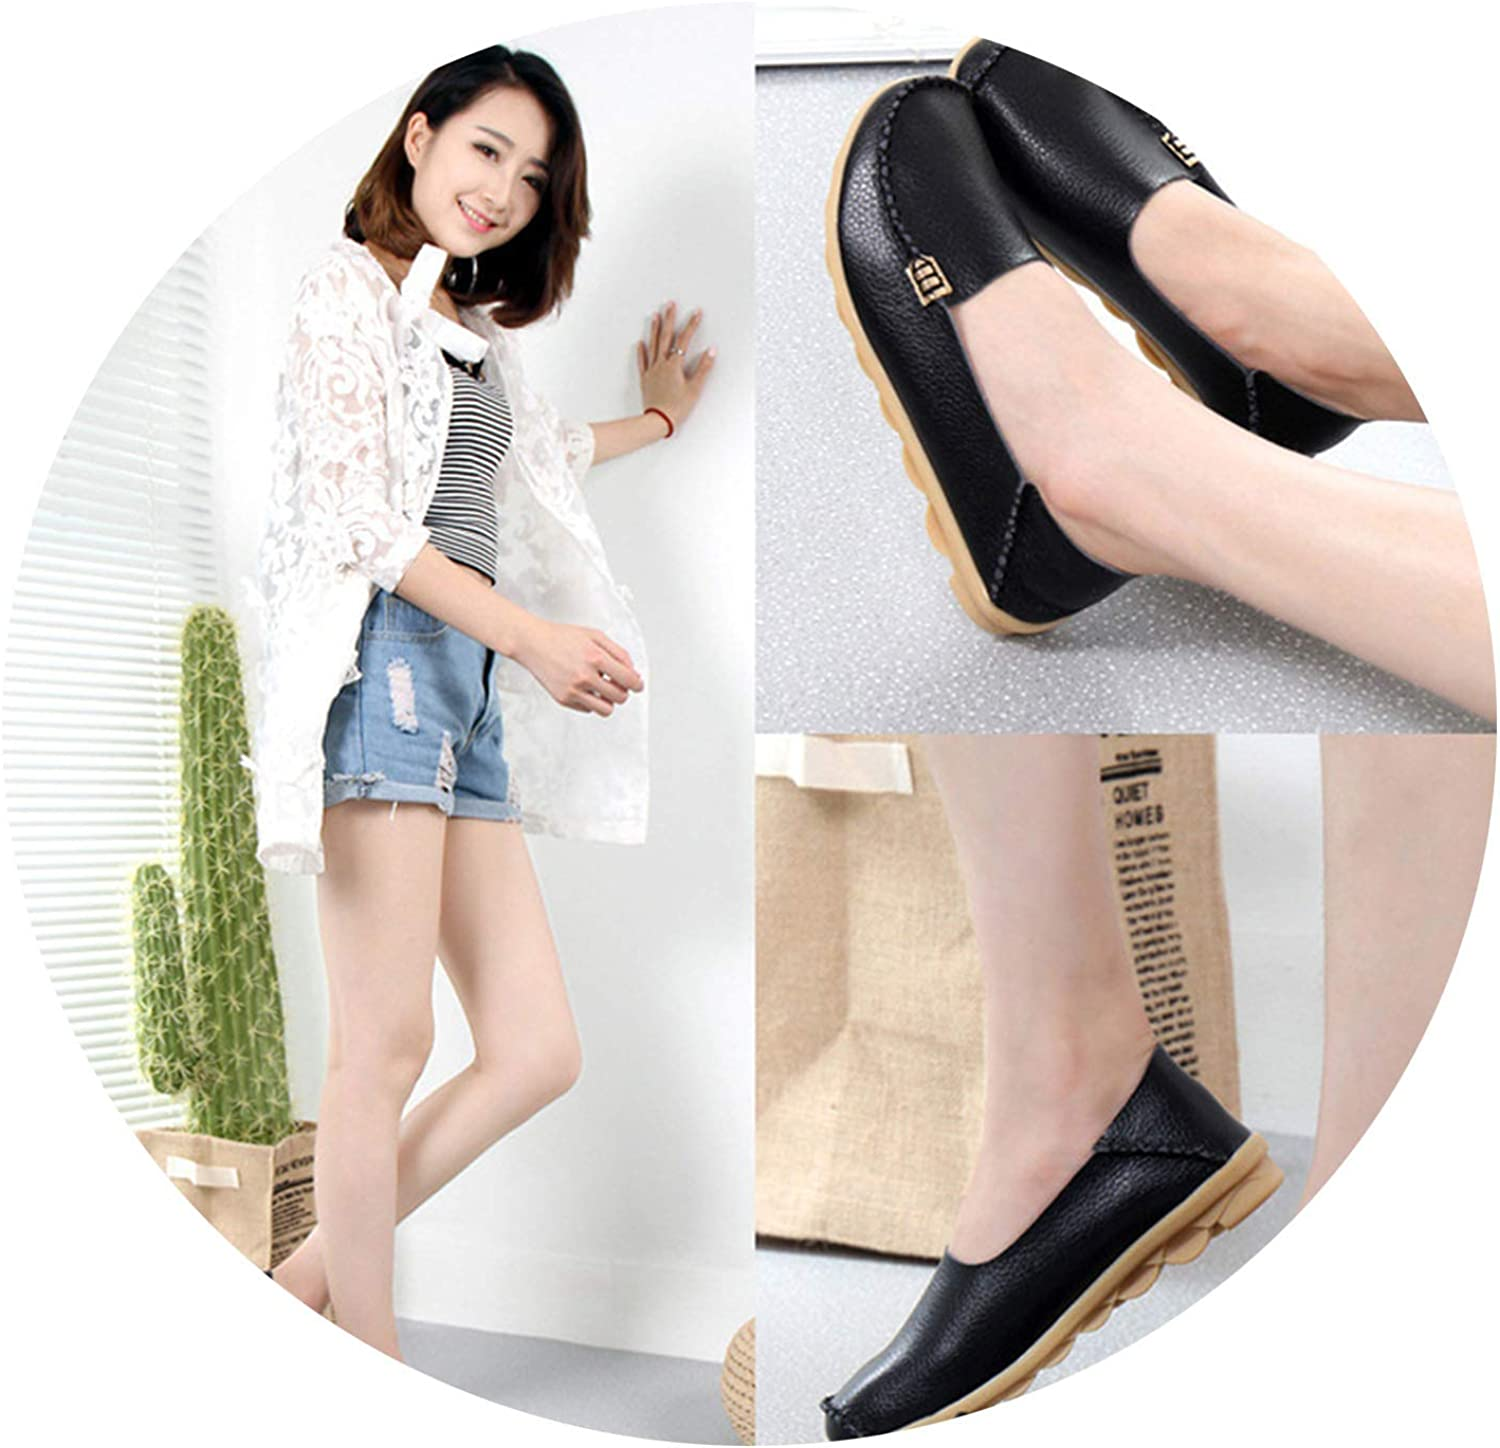 Don't mention the past Women shoes Plus Size Flat shoes Women Genuine Leather Loafers,Black,5